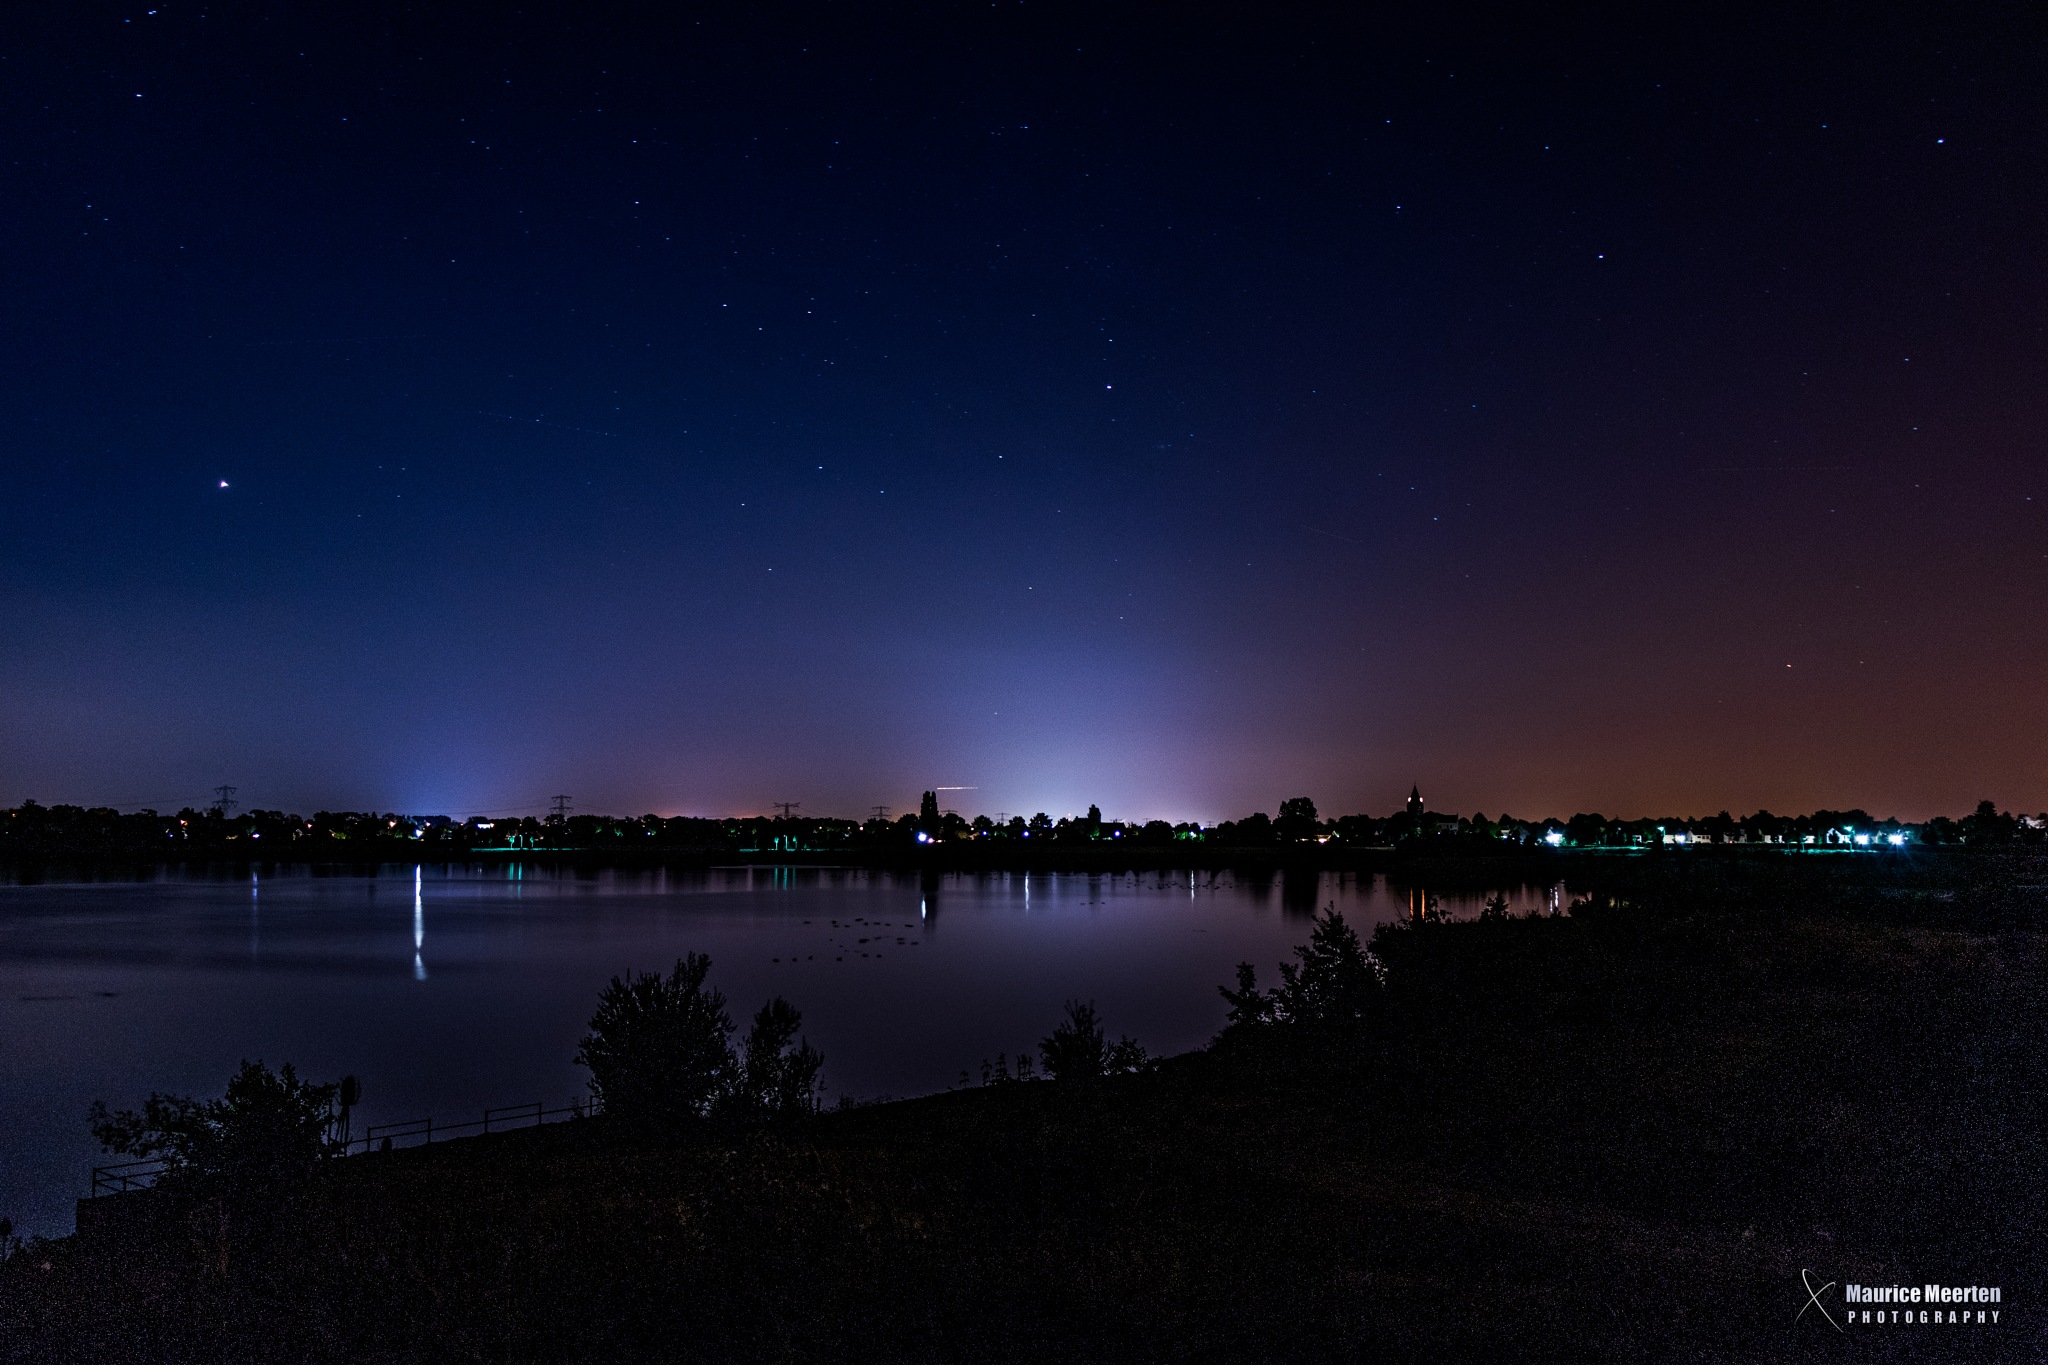 Landscape at night by Maurice Meerten